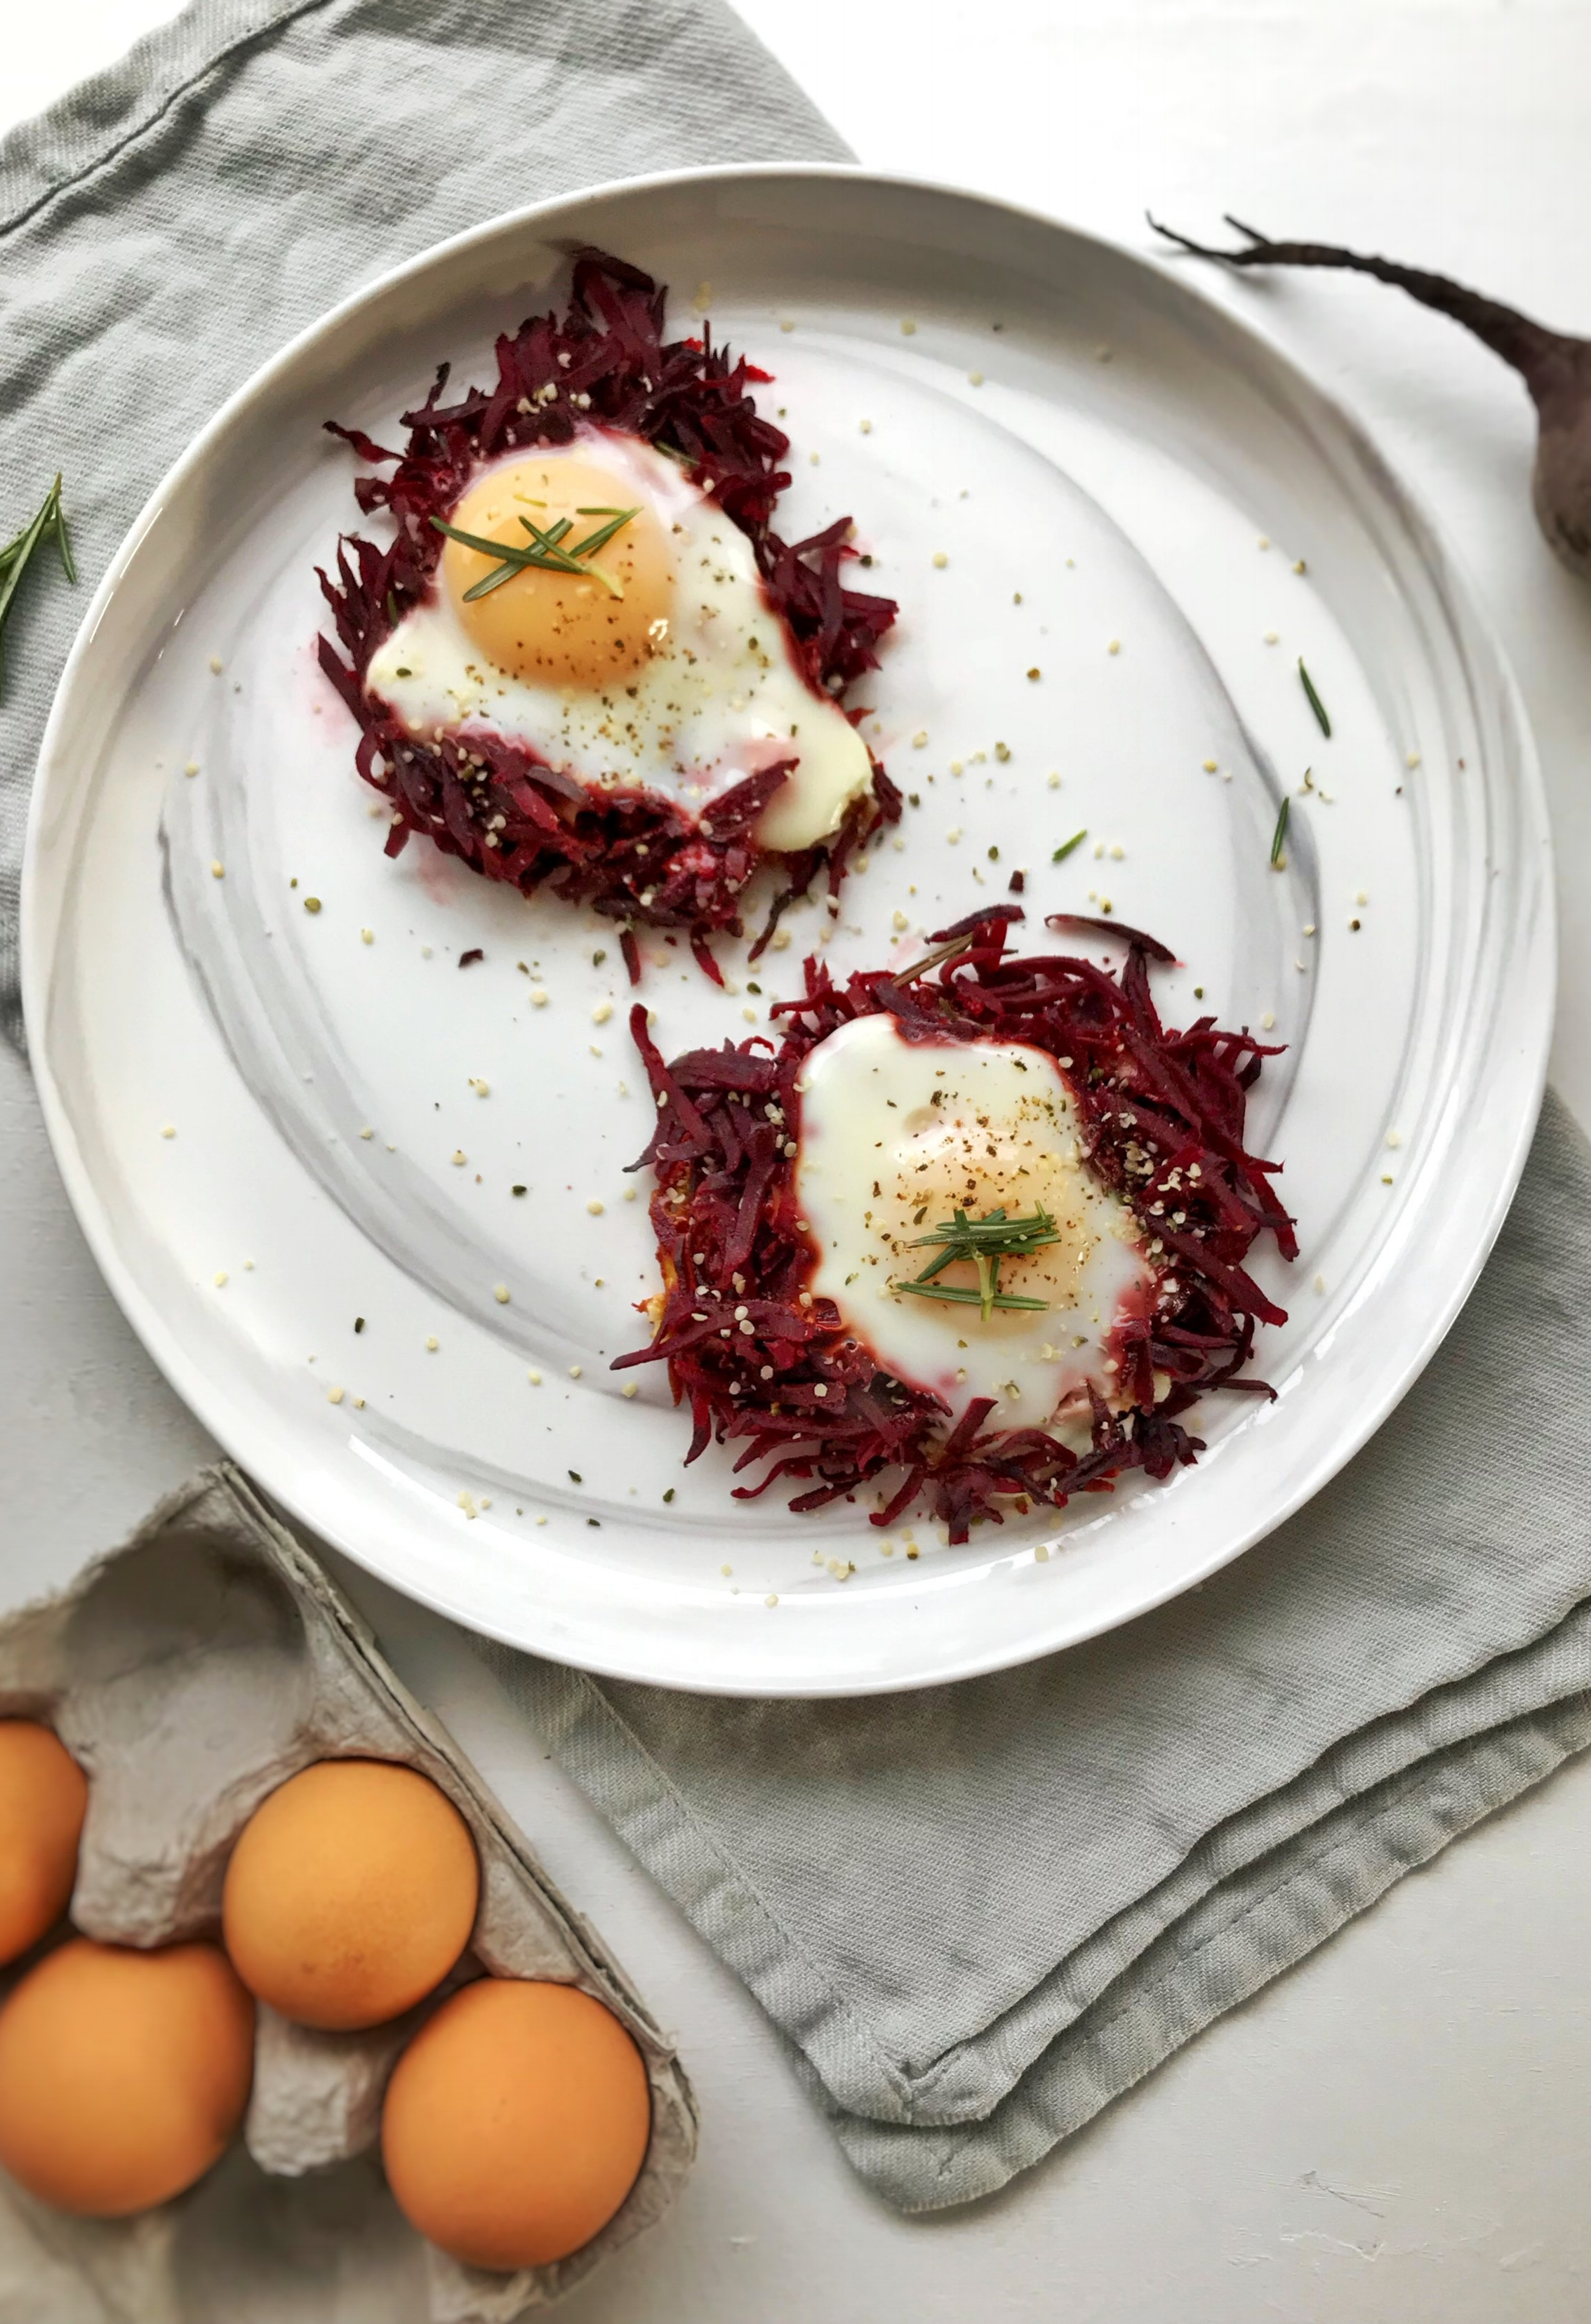 Red Beet Egg Nests - Ingredients:1 clove garlic1/4 cup onion2 small beets/ 1 large beet2 eggsRosemary, salt, pepper & hemp hearts to garnishDirections:Wash & spiralize 2 smaller beets or 1 large beet. I have a hand spiralizer, which is harder to use with smaller foods, but experiment to see what works best for you. Heat a skillet with extra virgin coconut oil, 1 minced garlic clove and the onion. After a minute of sizzling, add the spiralized beets to the skillet and mix thoroughly. Cover, stirring occasionally for around 10 minutes.When beets are nearly cooked (will be soft in texture, but not too soft), add fresh rosemary, salt and pepper. Position beets into two